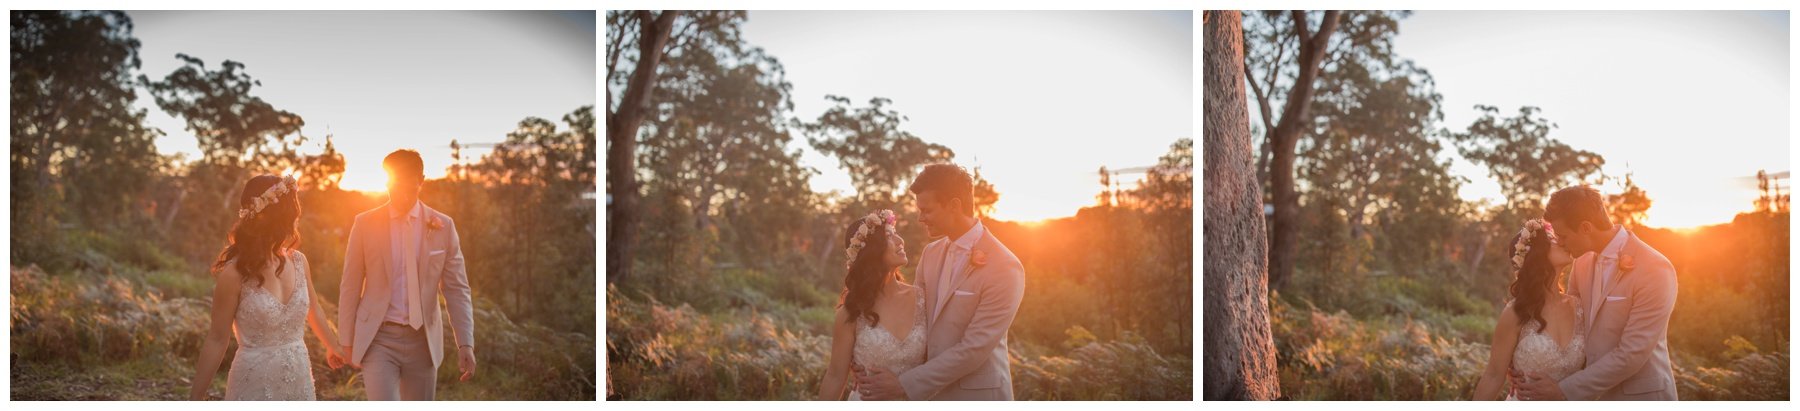 Country Wedding photographer, Nelson Bay wedding, Kangaroo Valley wedding photographer, Southern highlands photographer, sunset wedding